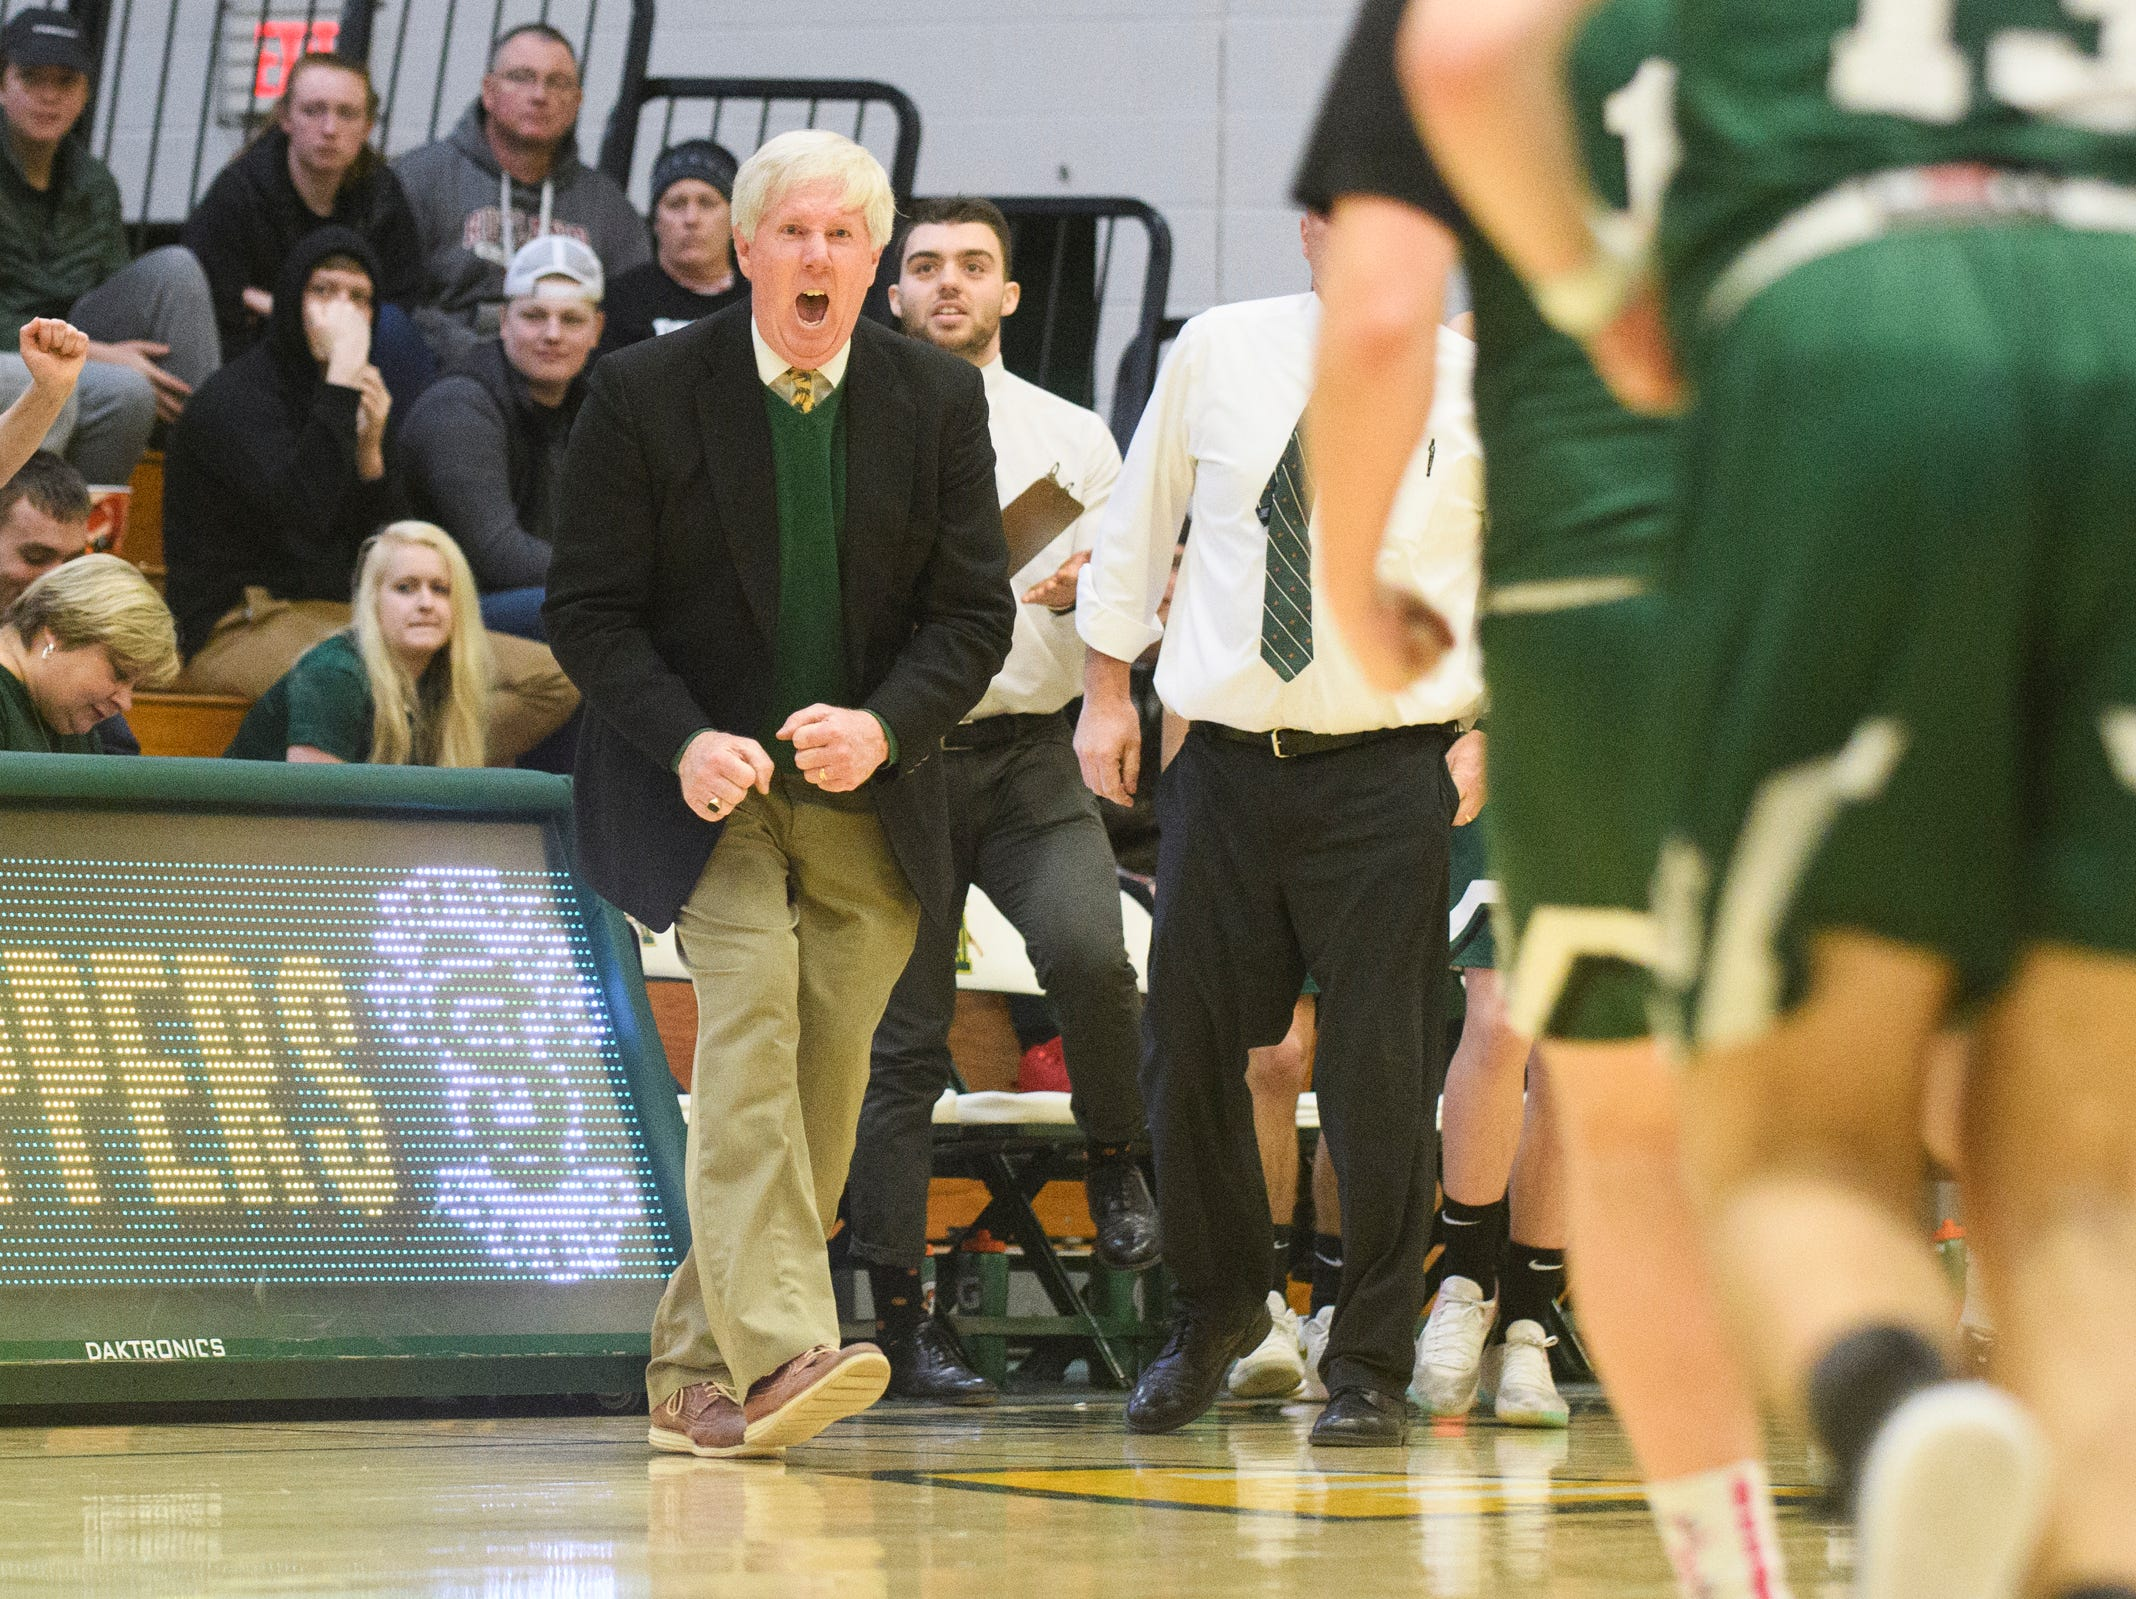 St. Johnsbury head coach David McGinn celebrates during the DI boys basketball championship game between the St. Johnsbury Hilltoppers and the Rutland Raiders at Patrick Gym on Sunday afternoon March 17, 2019 in Burlington, Vermont.